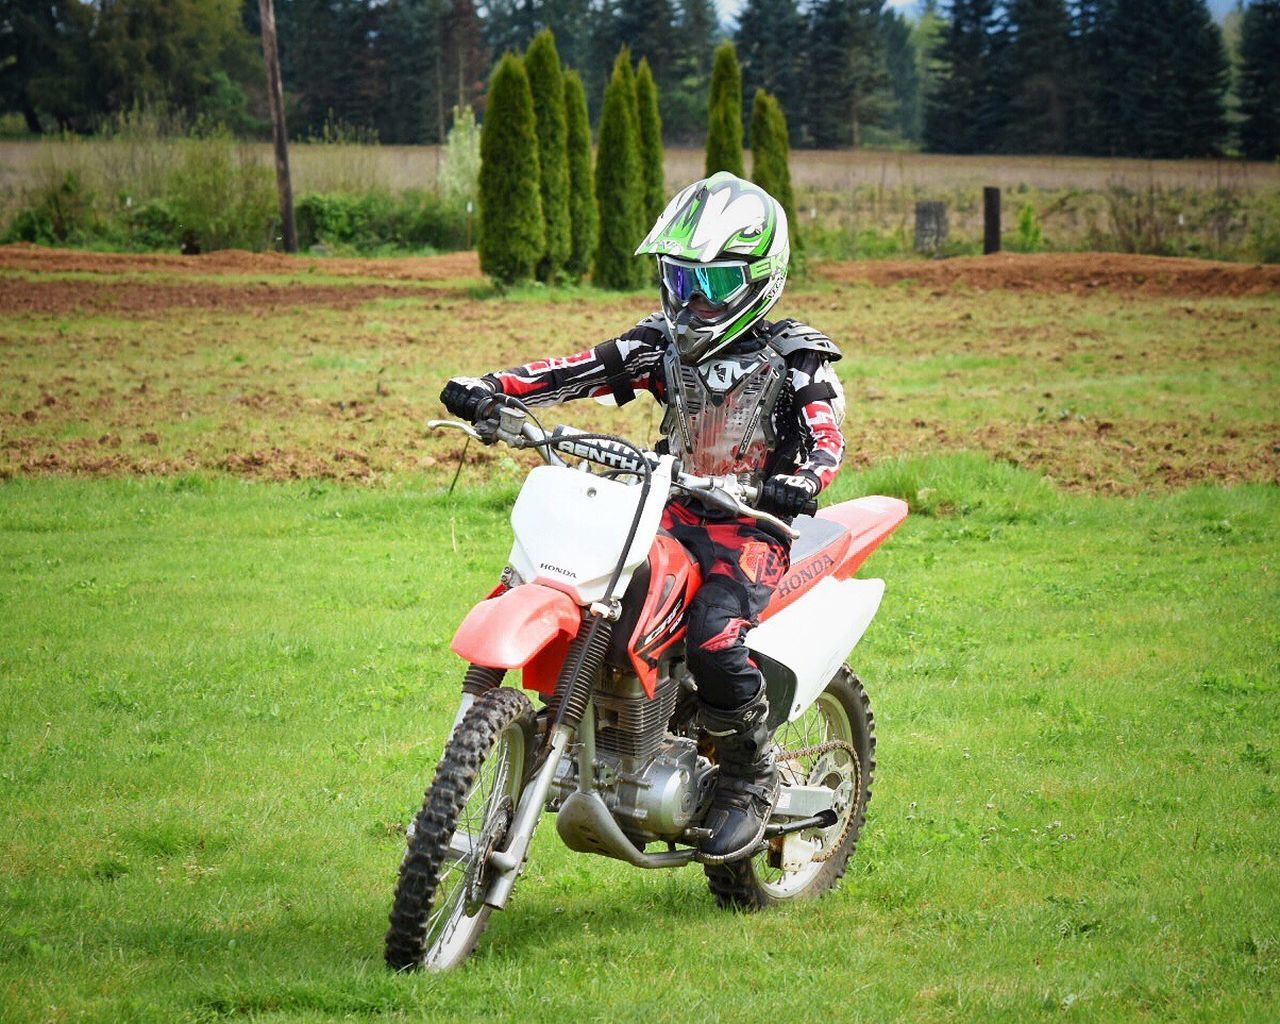 Motorcycle Crash Helmet Grass Biker Motocross Motorcycle Racing Day Outdoors Motorsport Tree One Person People The Great Outdoors - 2017 EyeEm Awards Dirtbike Youth Of Today Youth Culture Childhood Memories Motorsport Competitive Sport Extreme Sports Sports Clothing Real People Field Helmet Sports Helmet